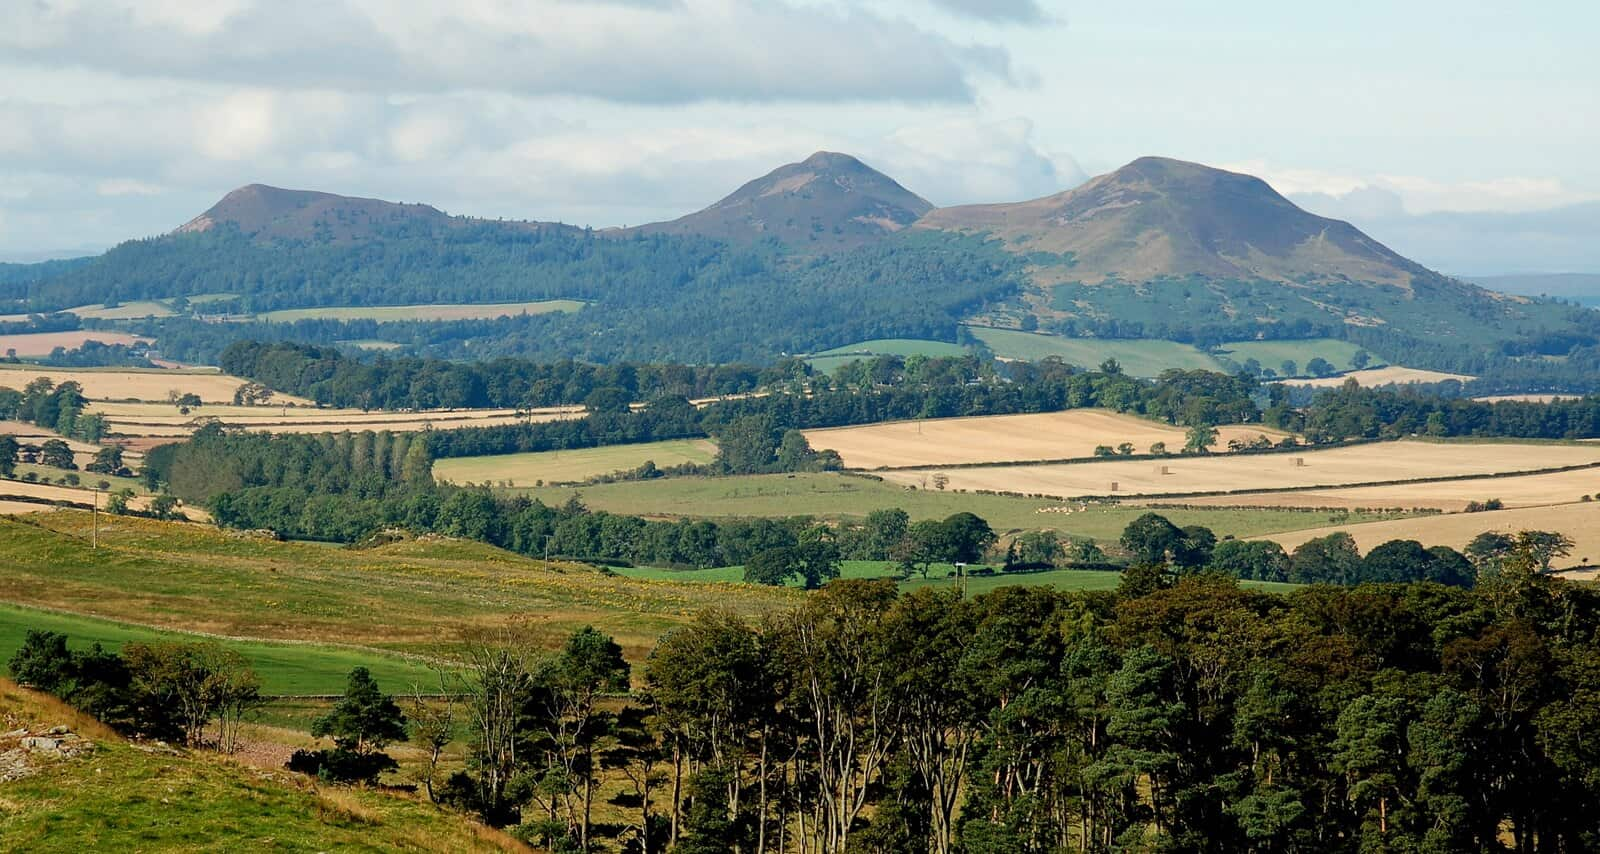 Eildon hills countryside scenery on the Borders Abbeys Way